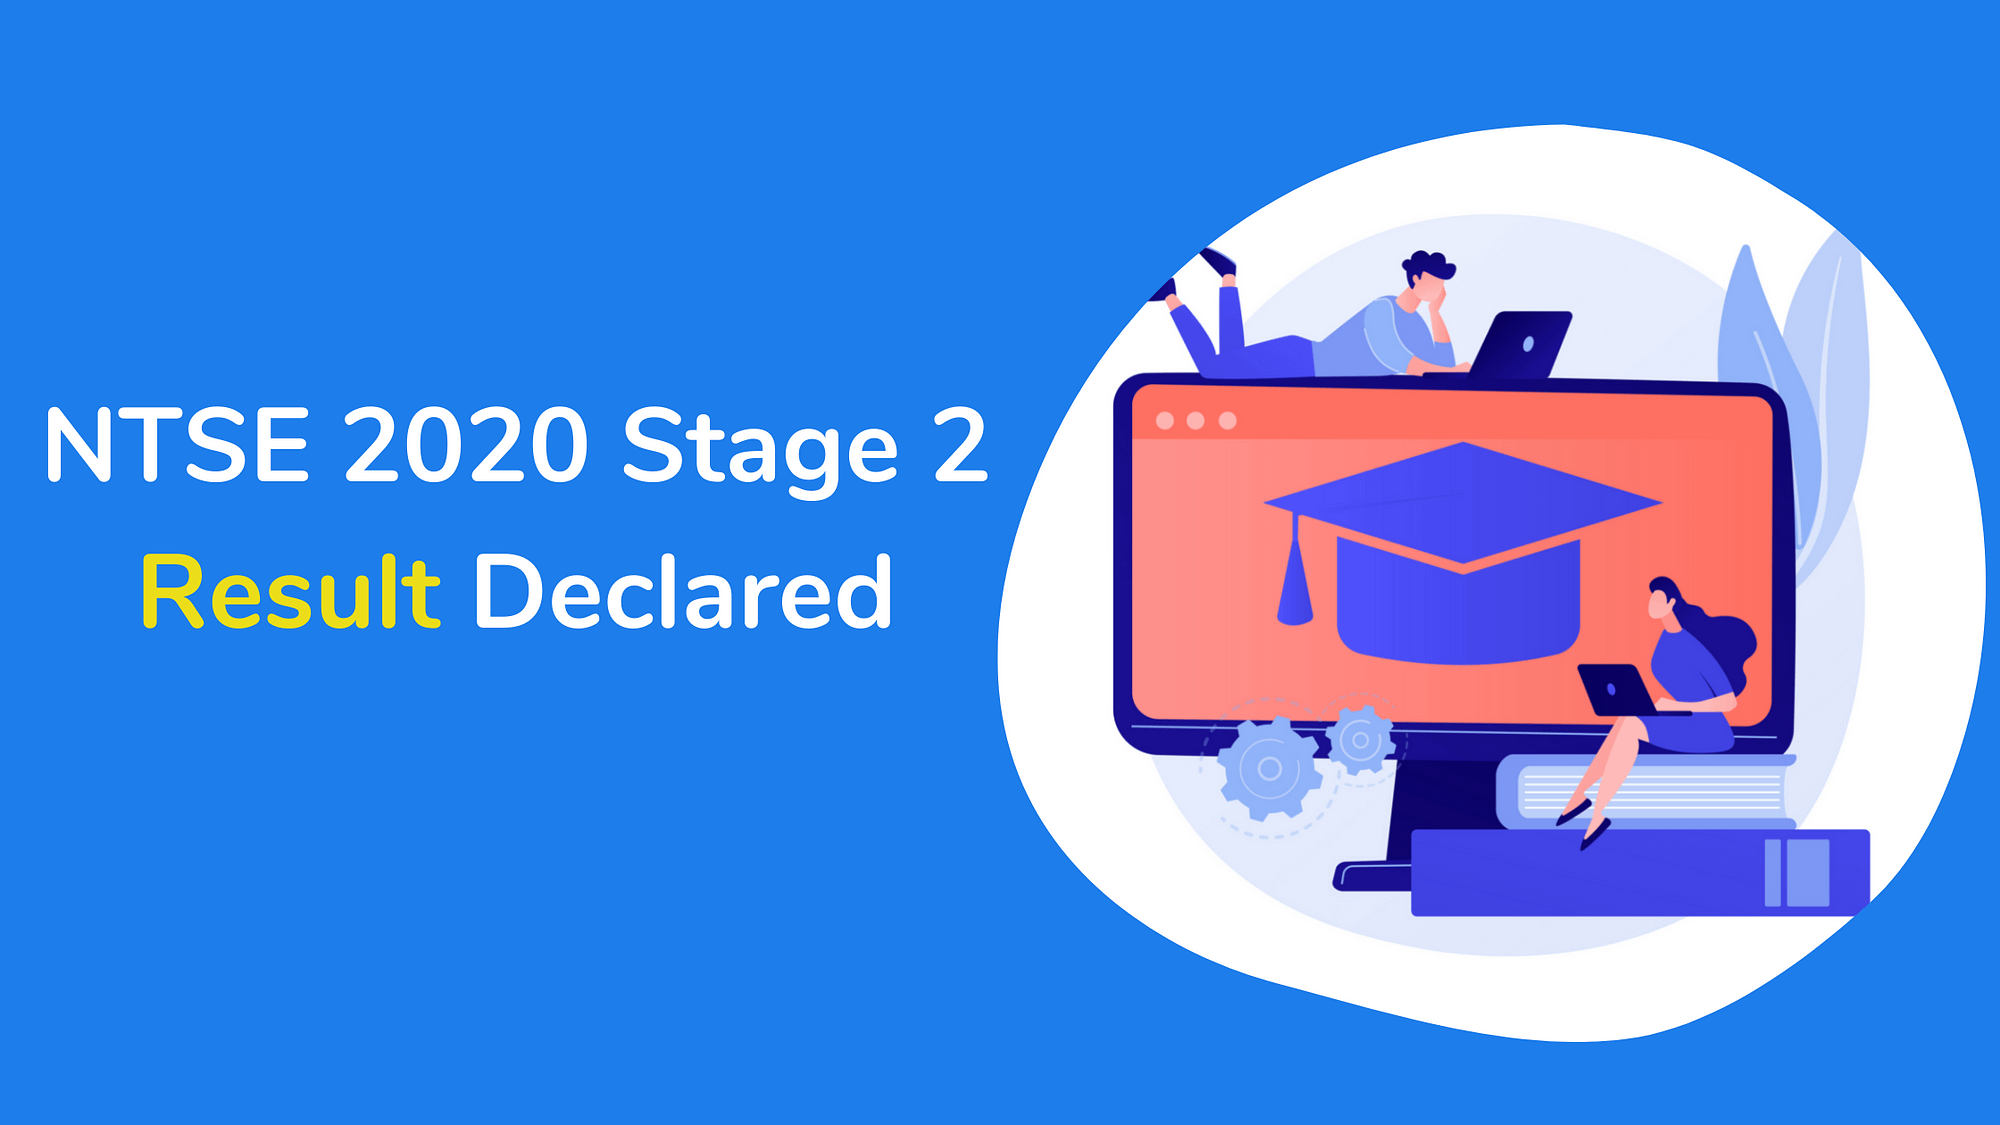 NTSE 2020 Stage 2 result declared, Check Details Here